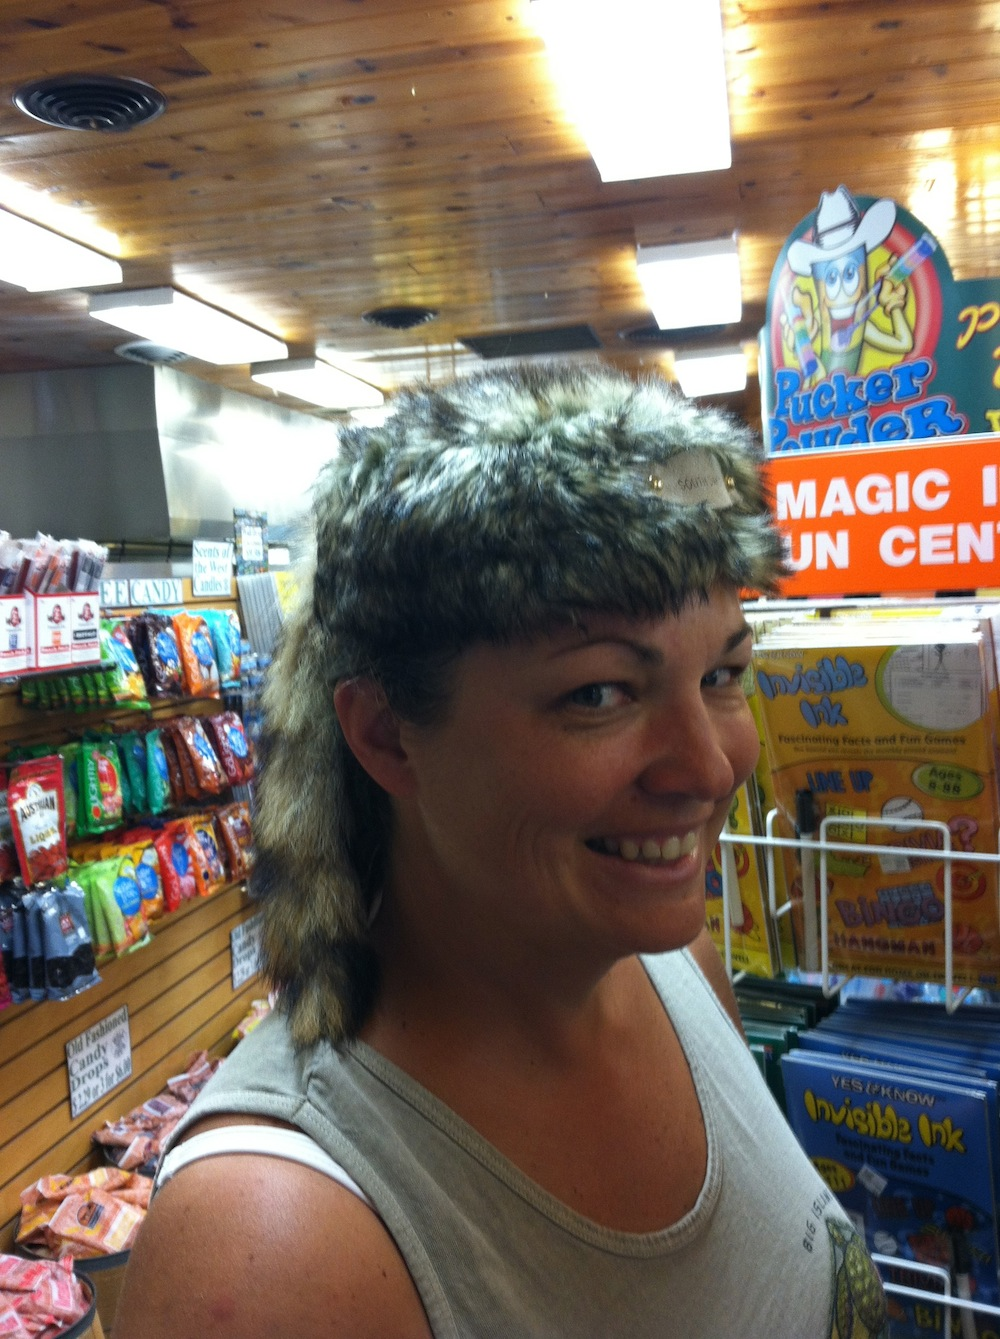 Coonskin?  Says I'm makin' moonshine in my spare time?